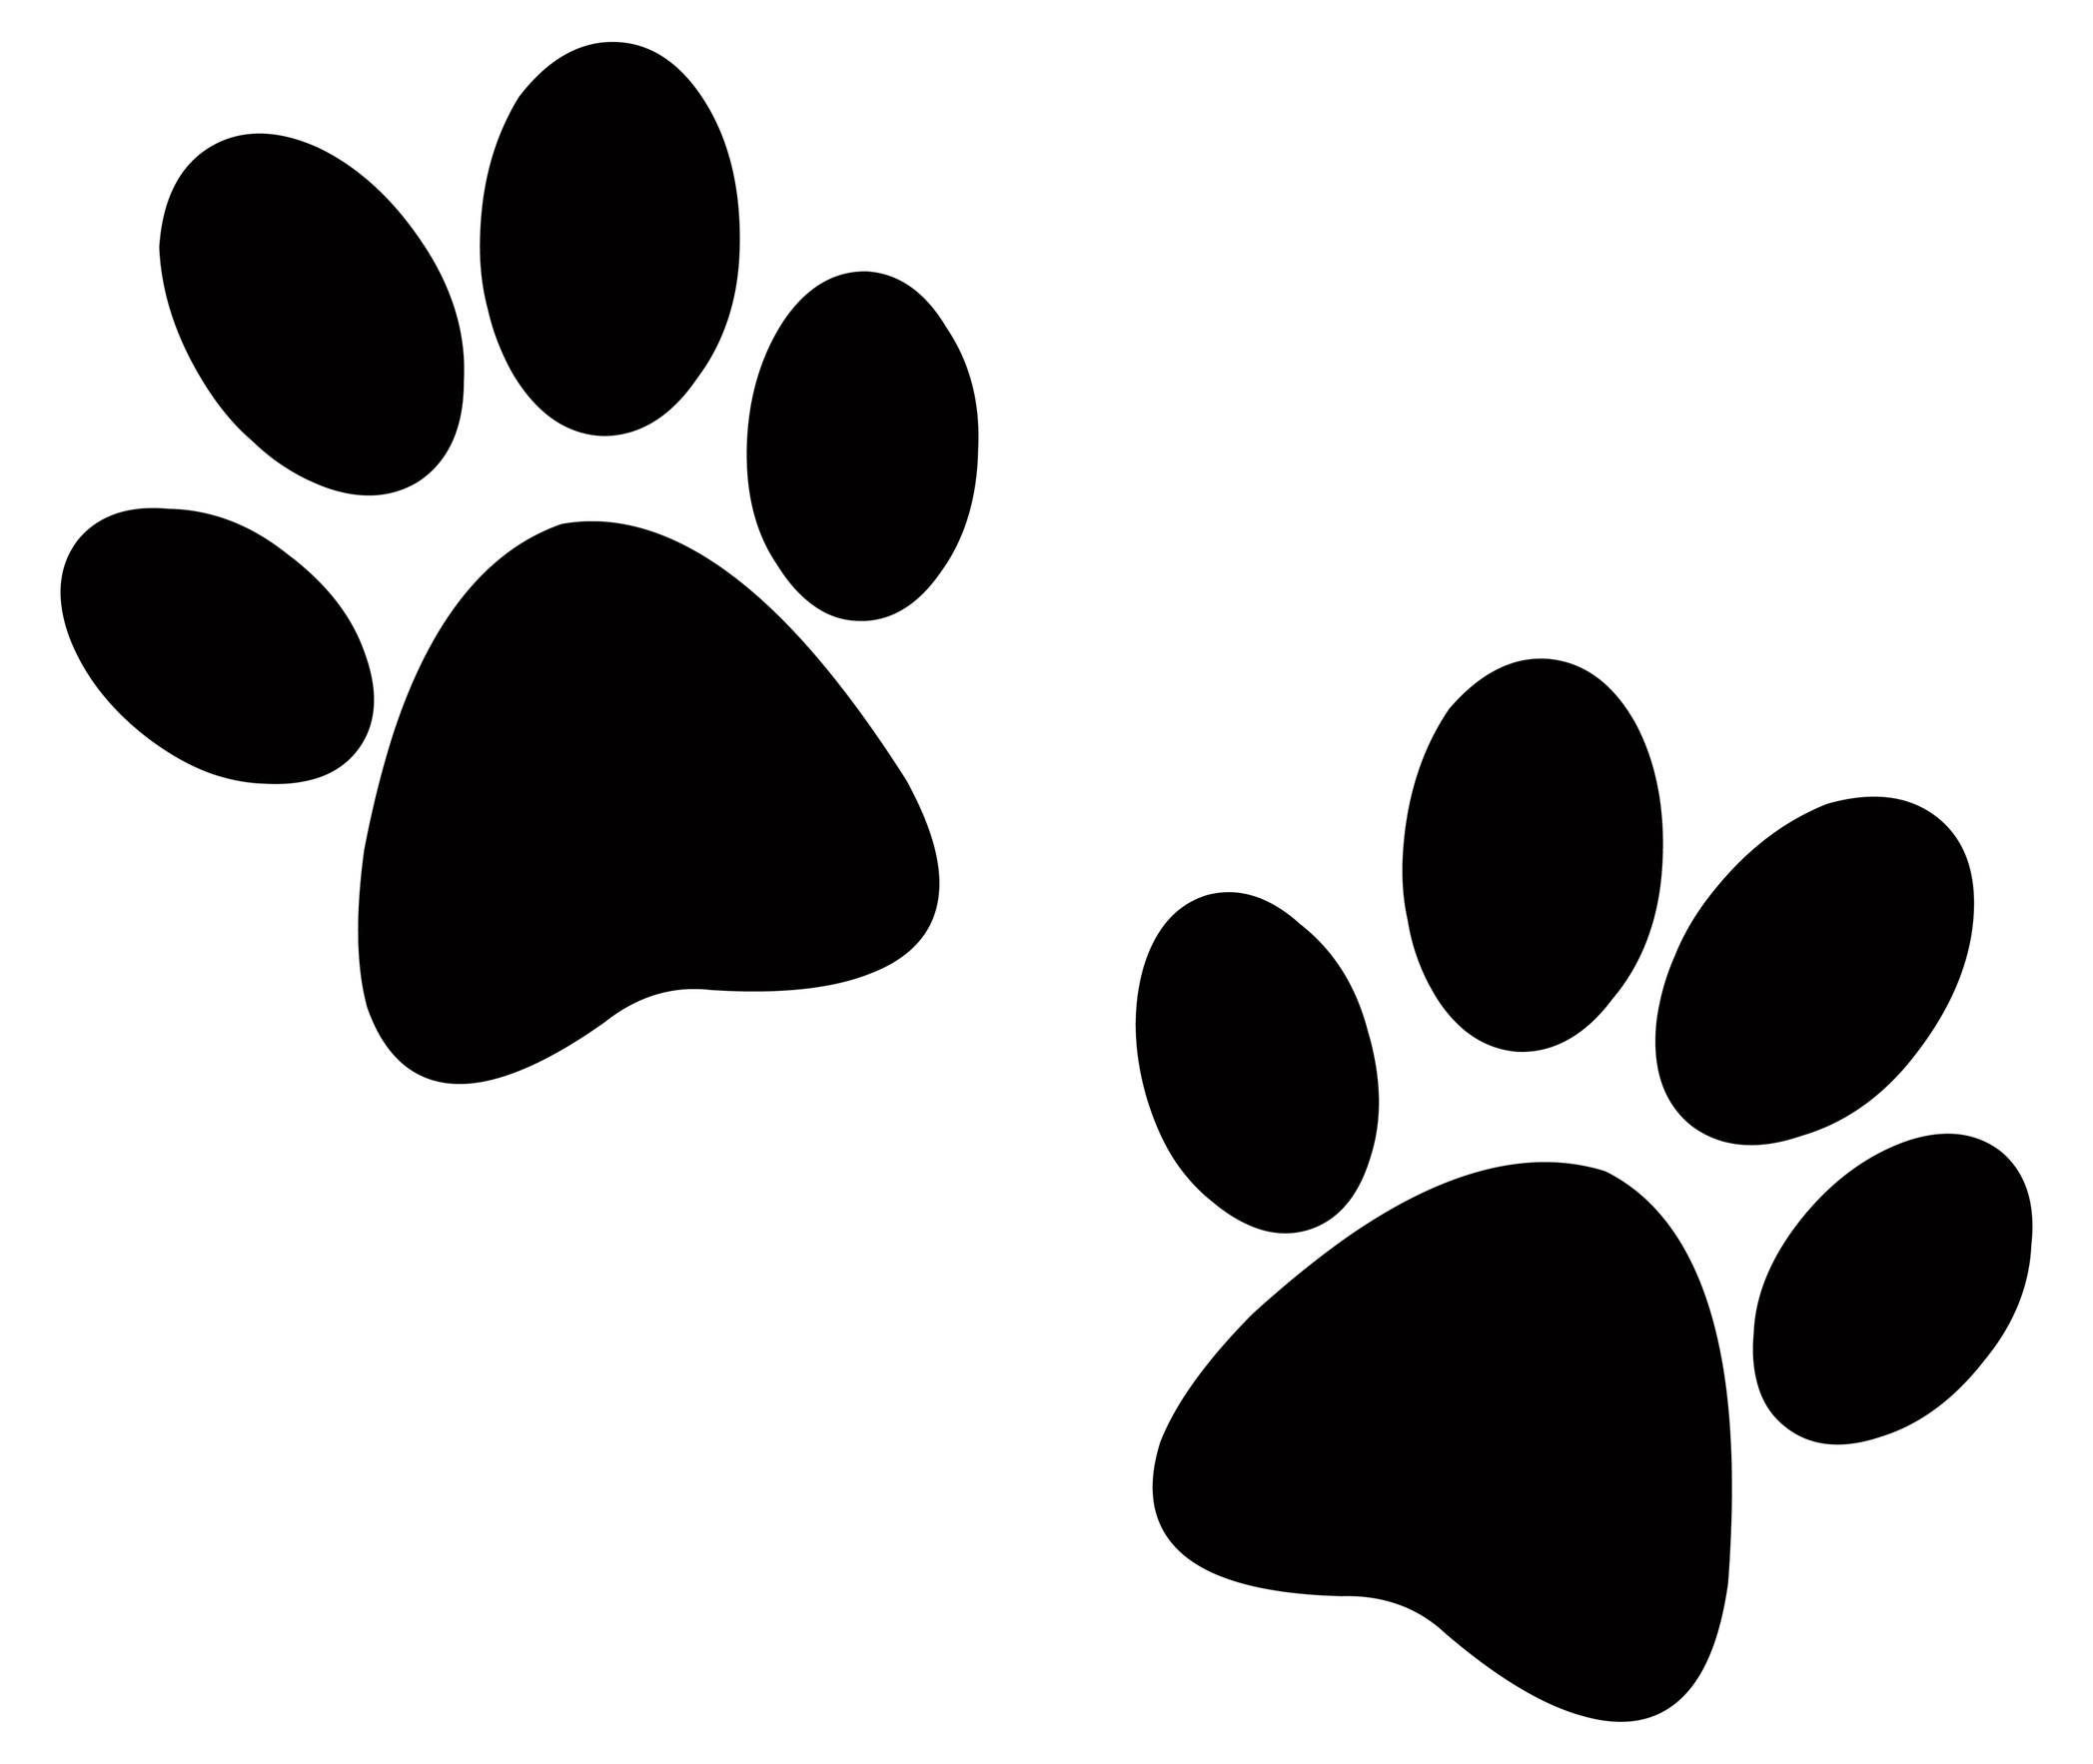 32 Pictures Of Paw Prints Free Cliparts That You Can Download To You